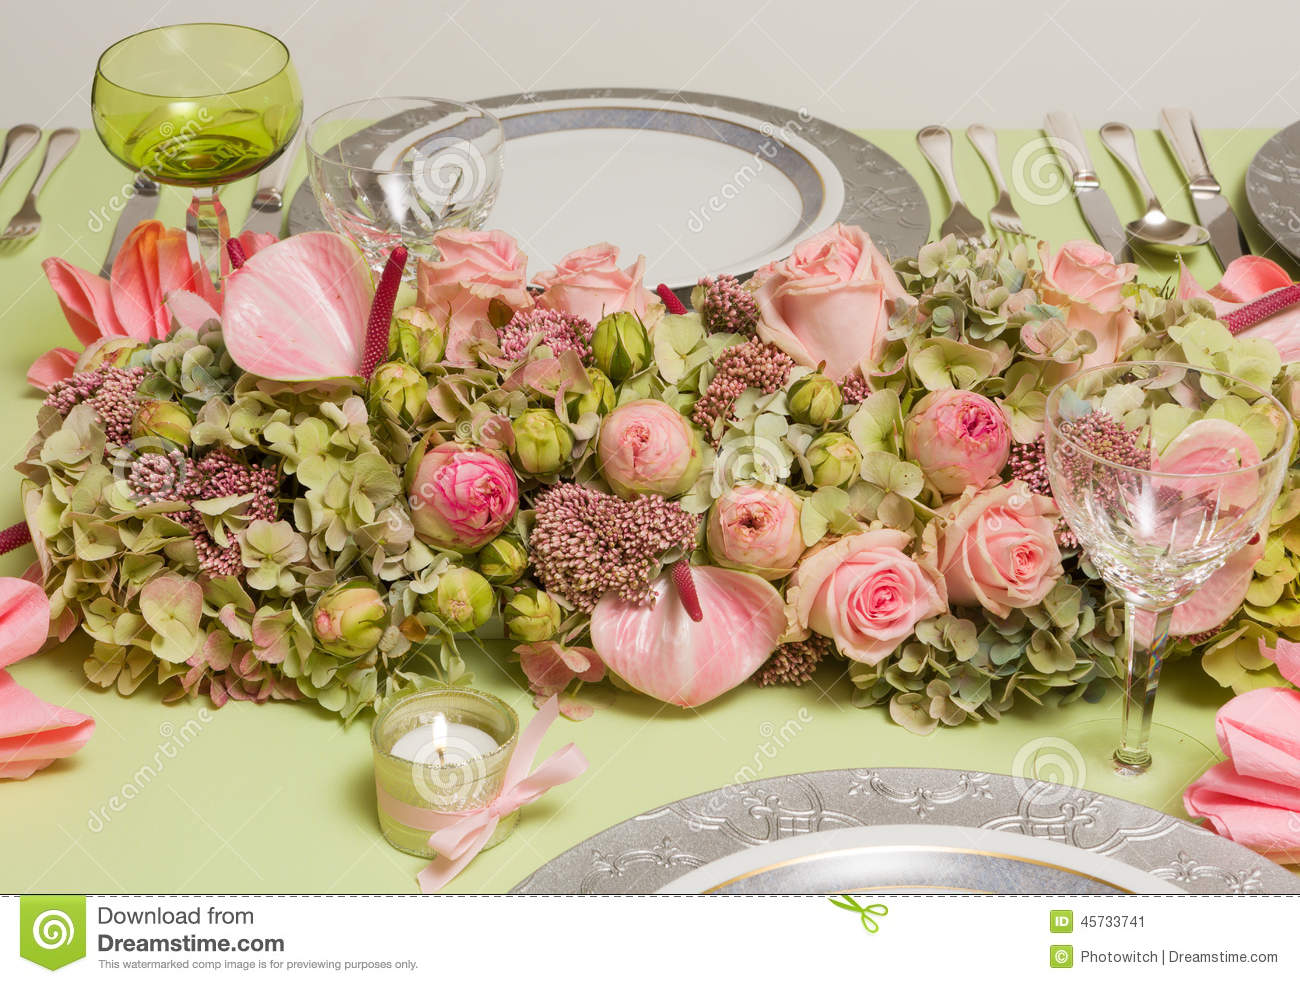 Festive flower arrangement on dinner table stock image for Dinner table flower arrangements